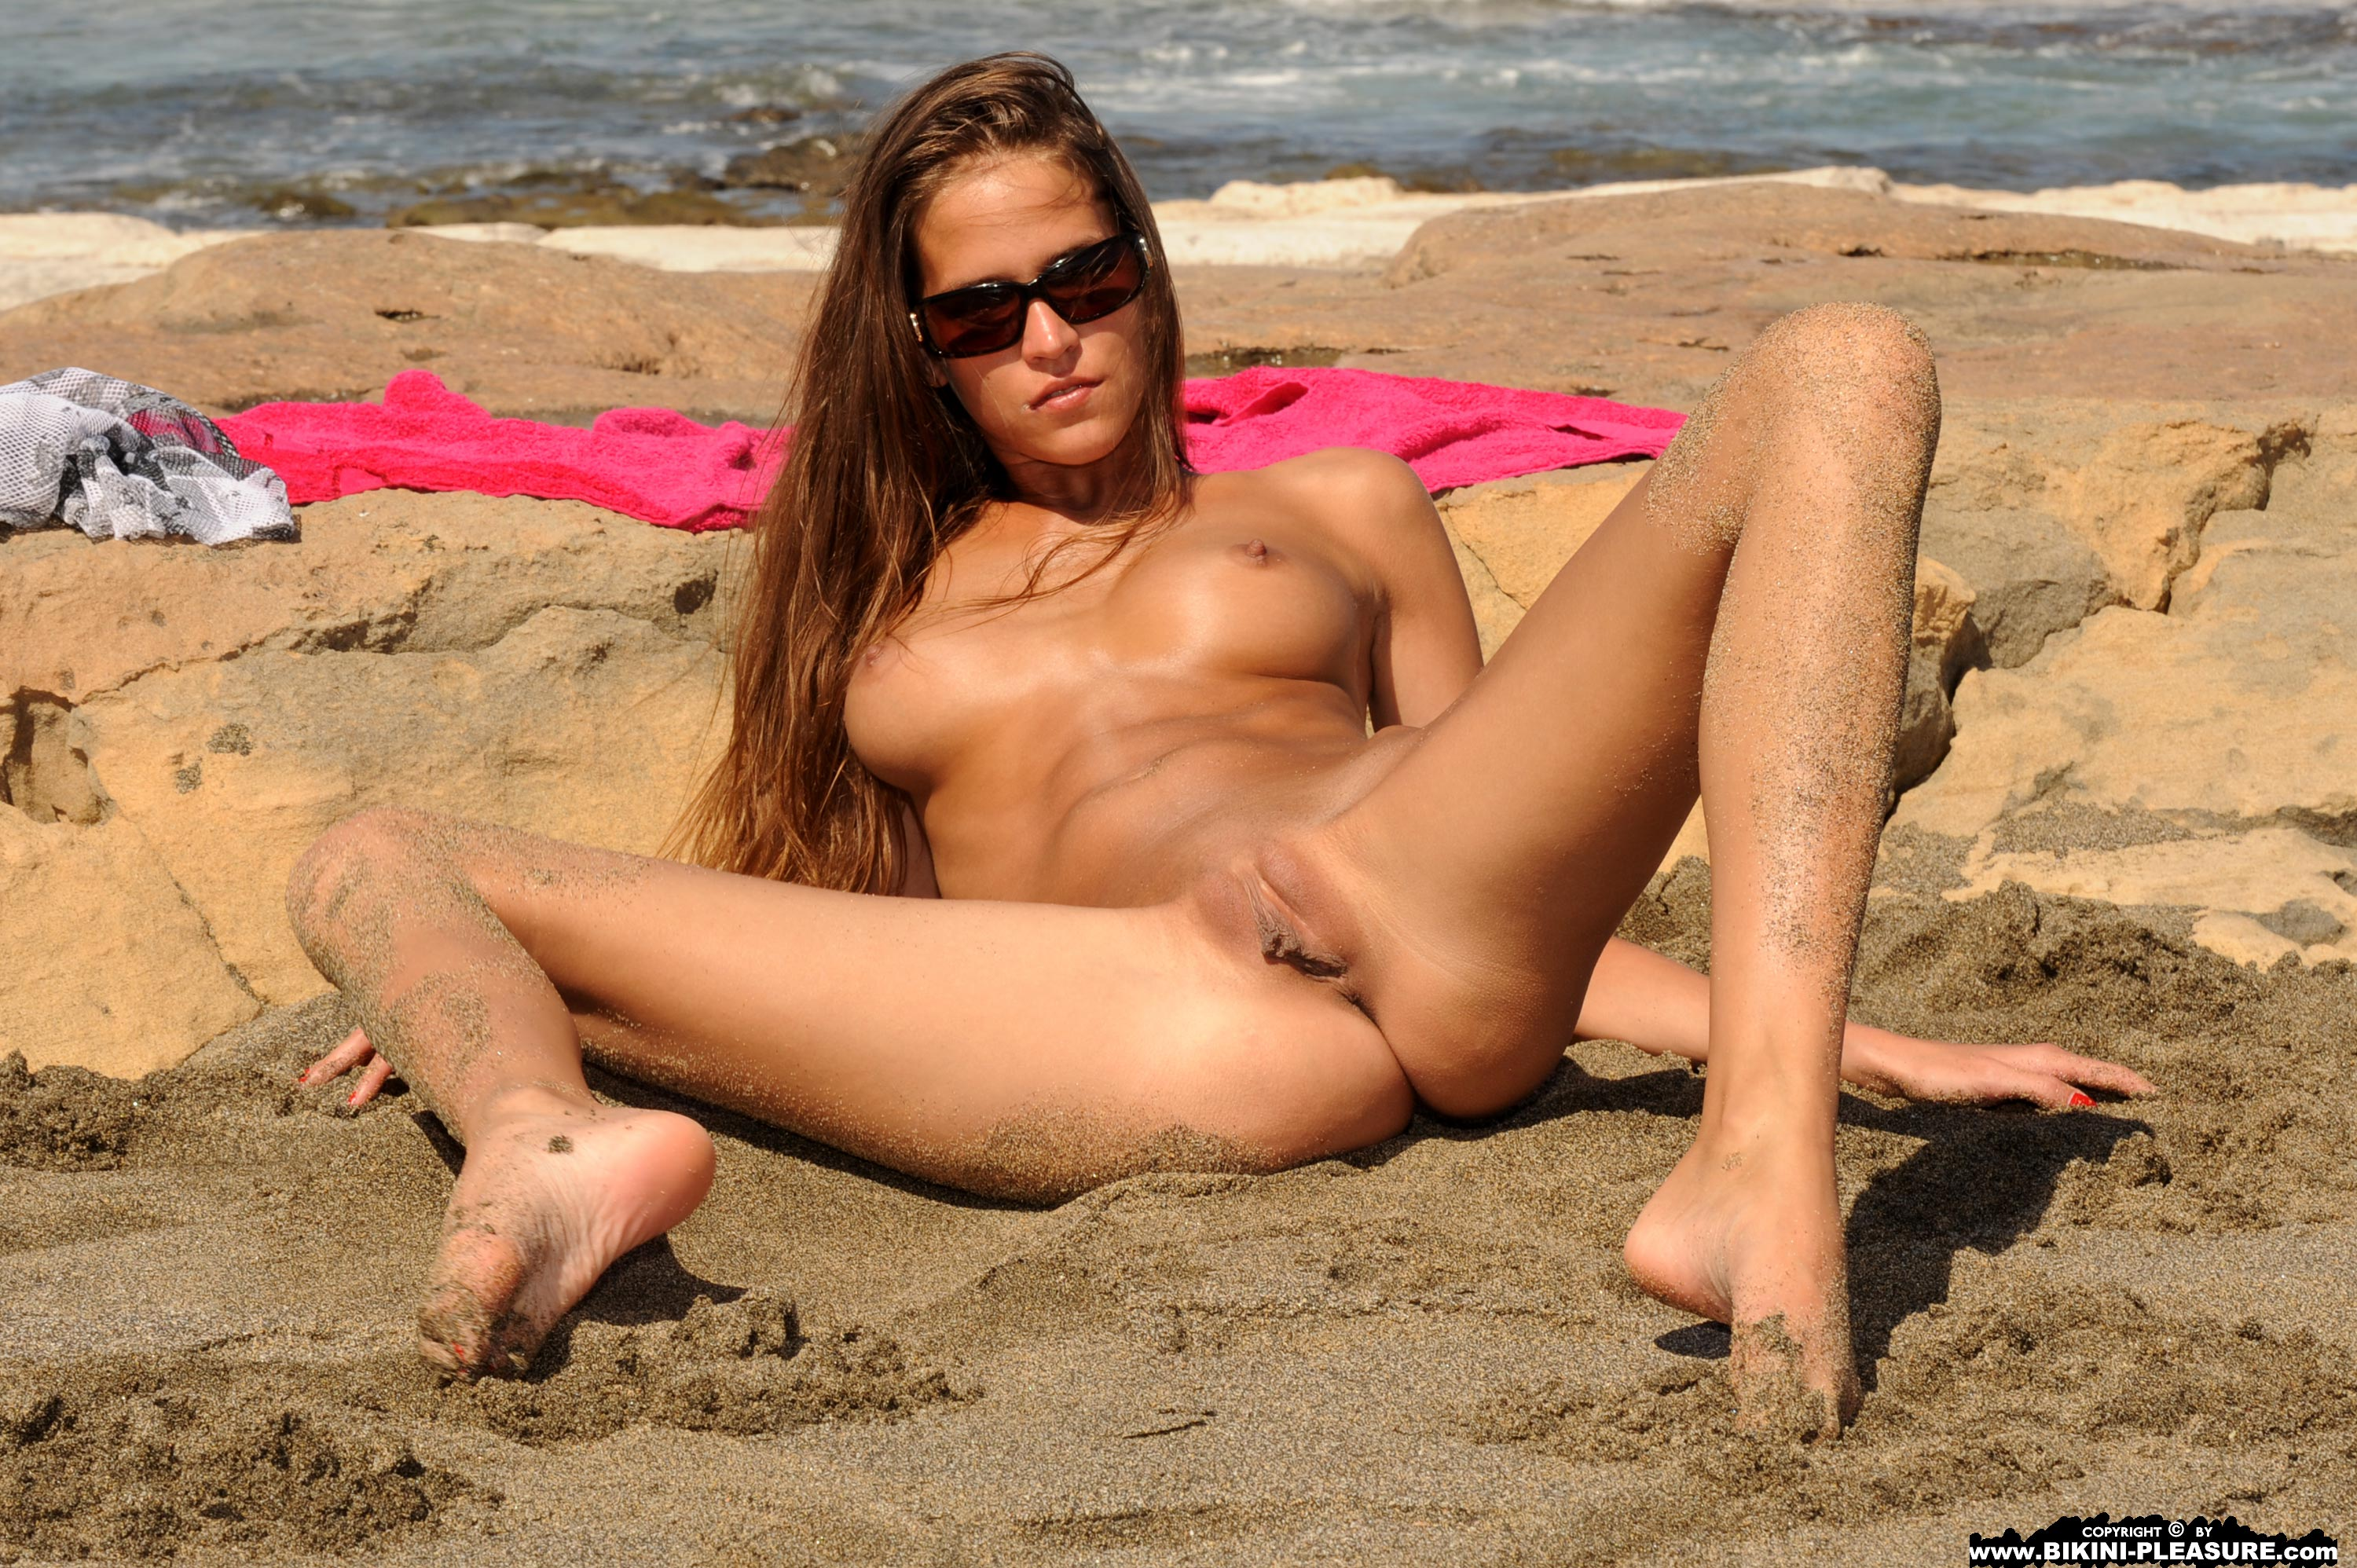 Bikini pleasure nude beach girls wallpaper